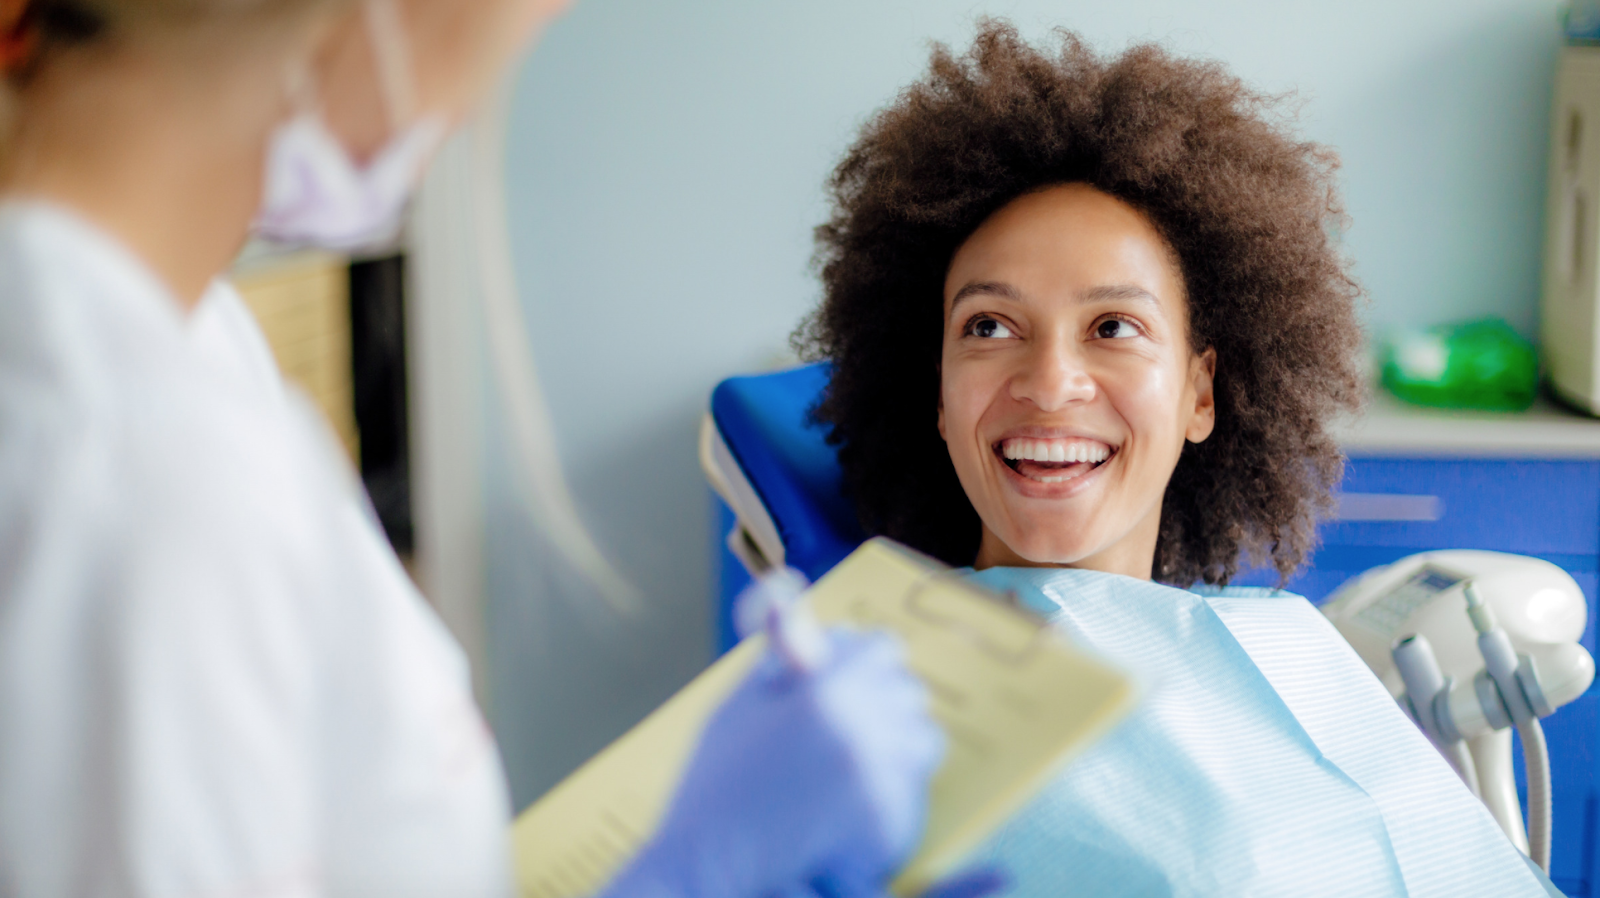 Women in dentists chair smiling